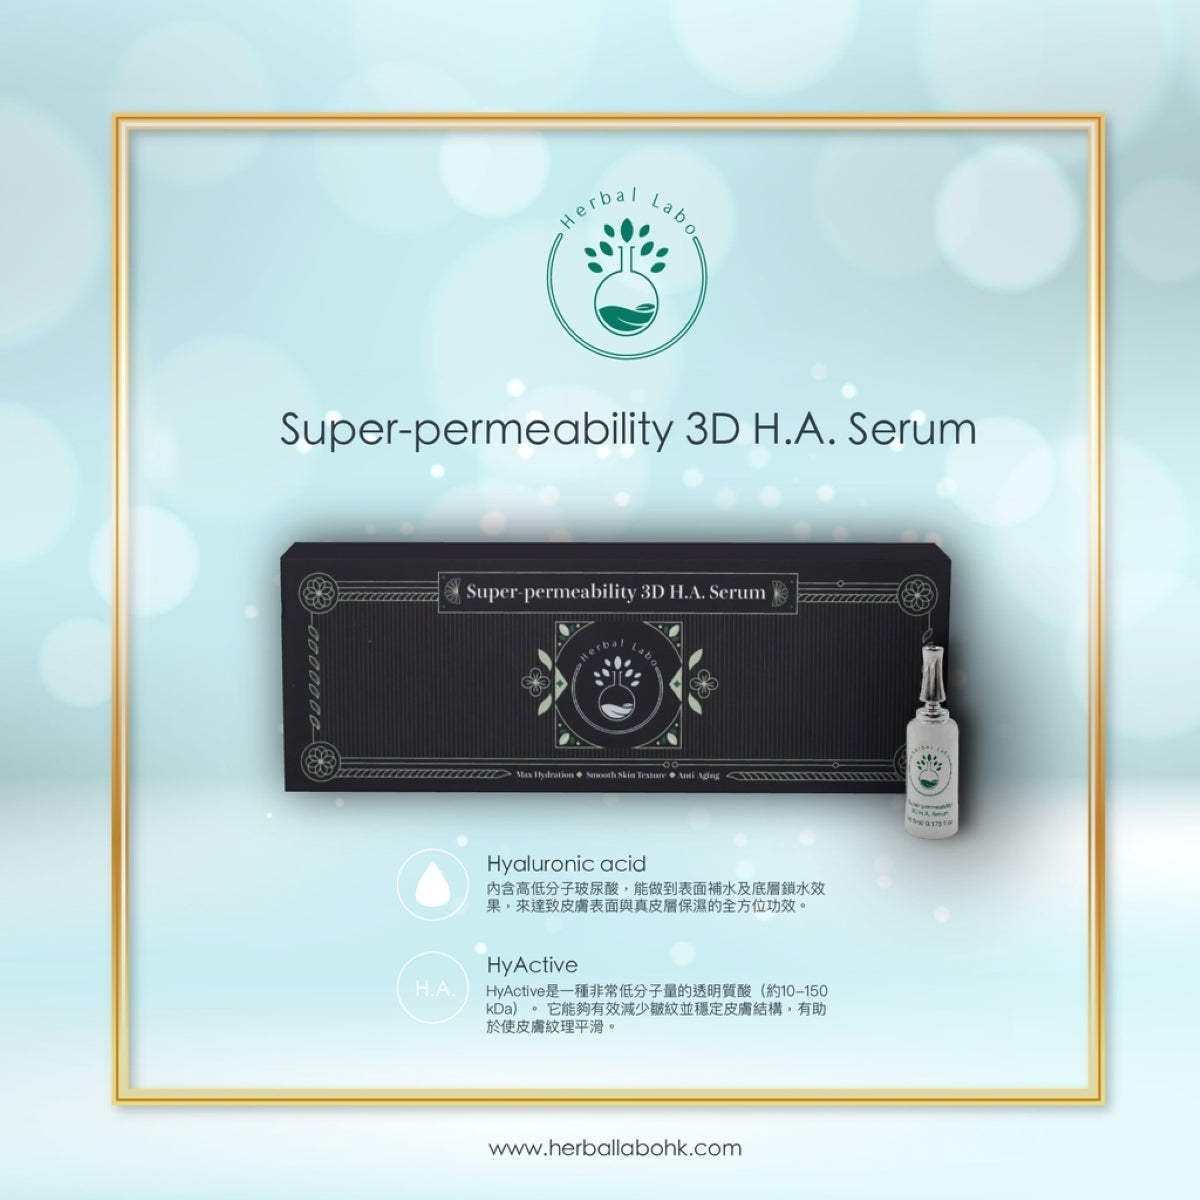 Jetour Mall Herbal Labo 超滲透3D玻尿酸精華 Herbal Labo Super-Permeability 3D H.A. Serum